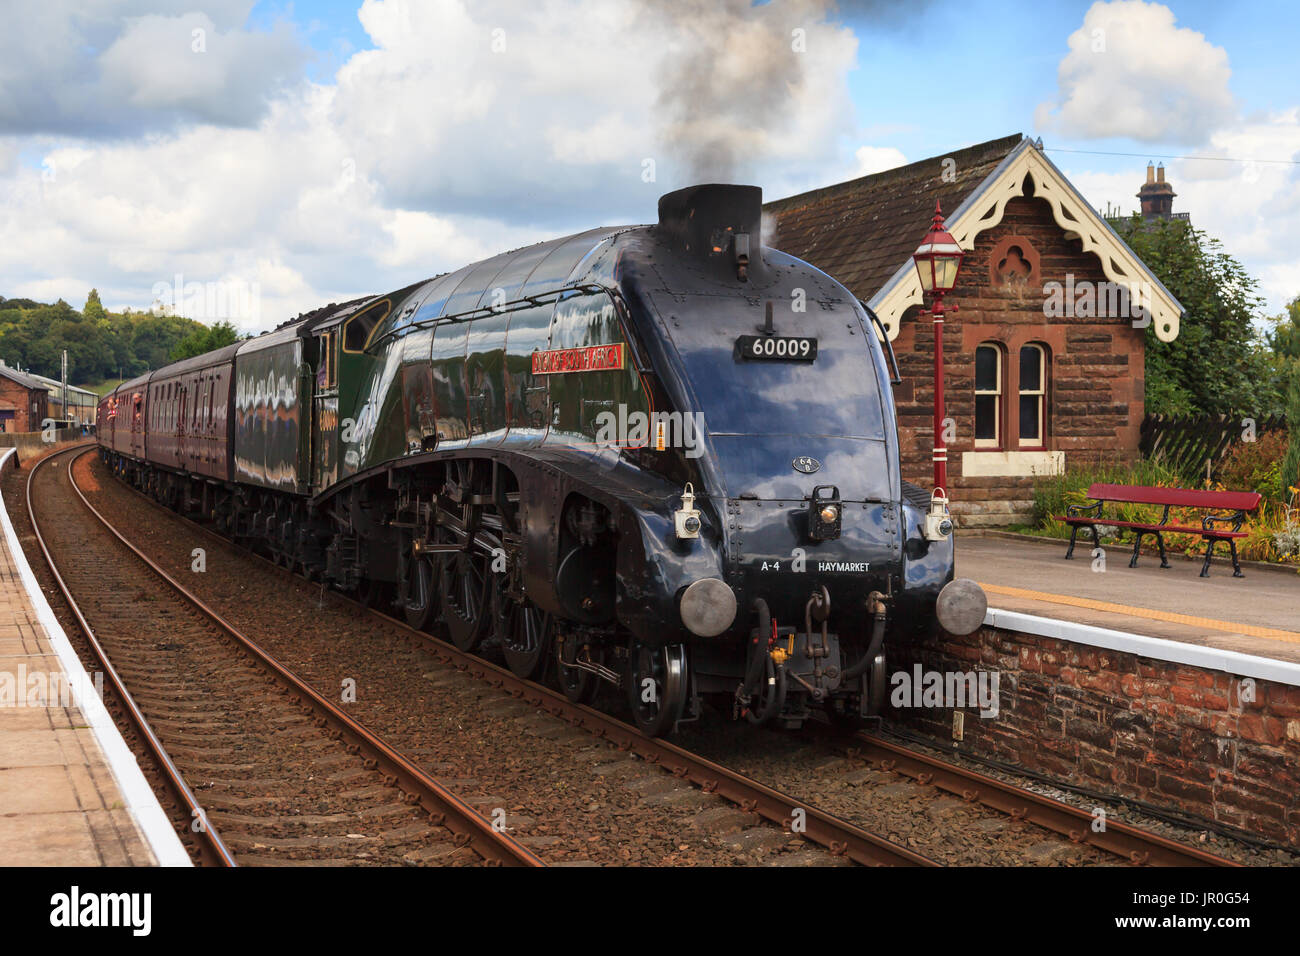 Preserved steam locomotive, Union of South Africa, heads the Cumbrian Mountain Express through Lazonby station, on the Settle to Carlisle railway. - Stock Image